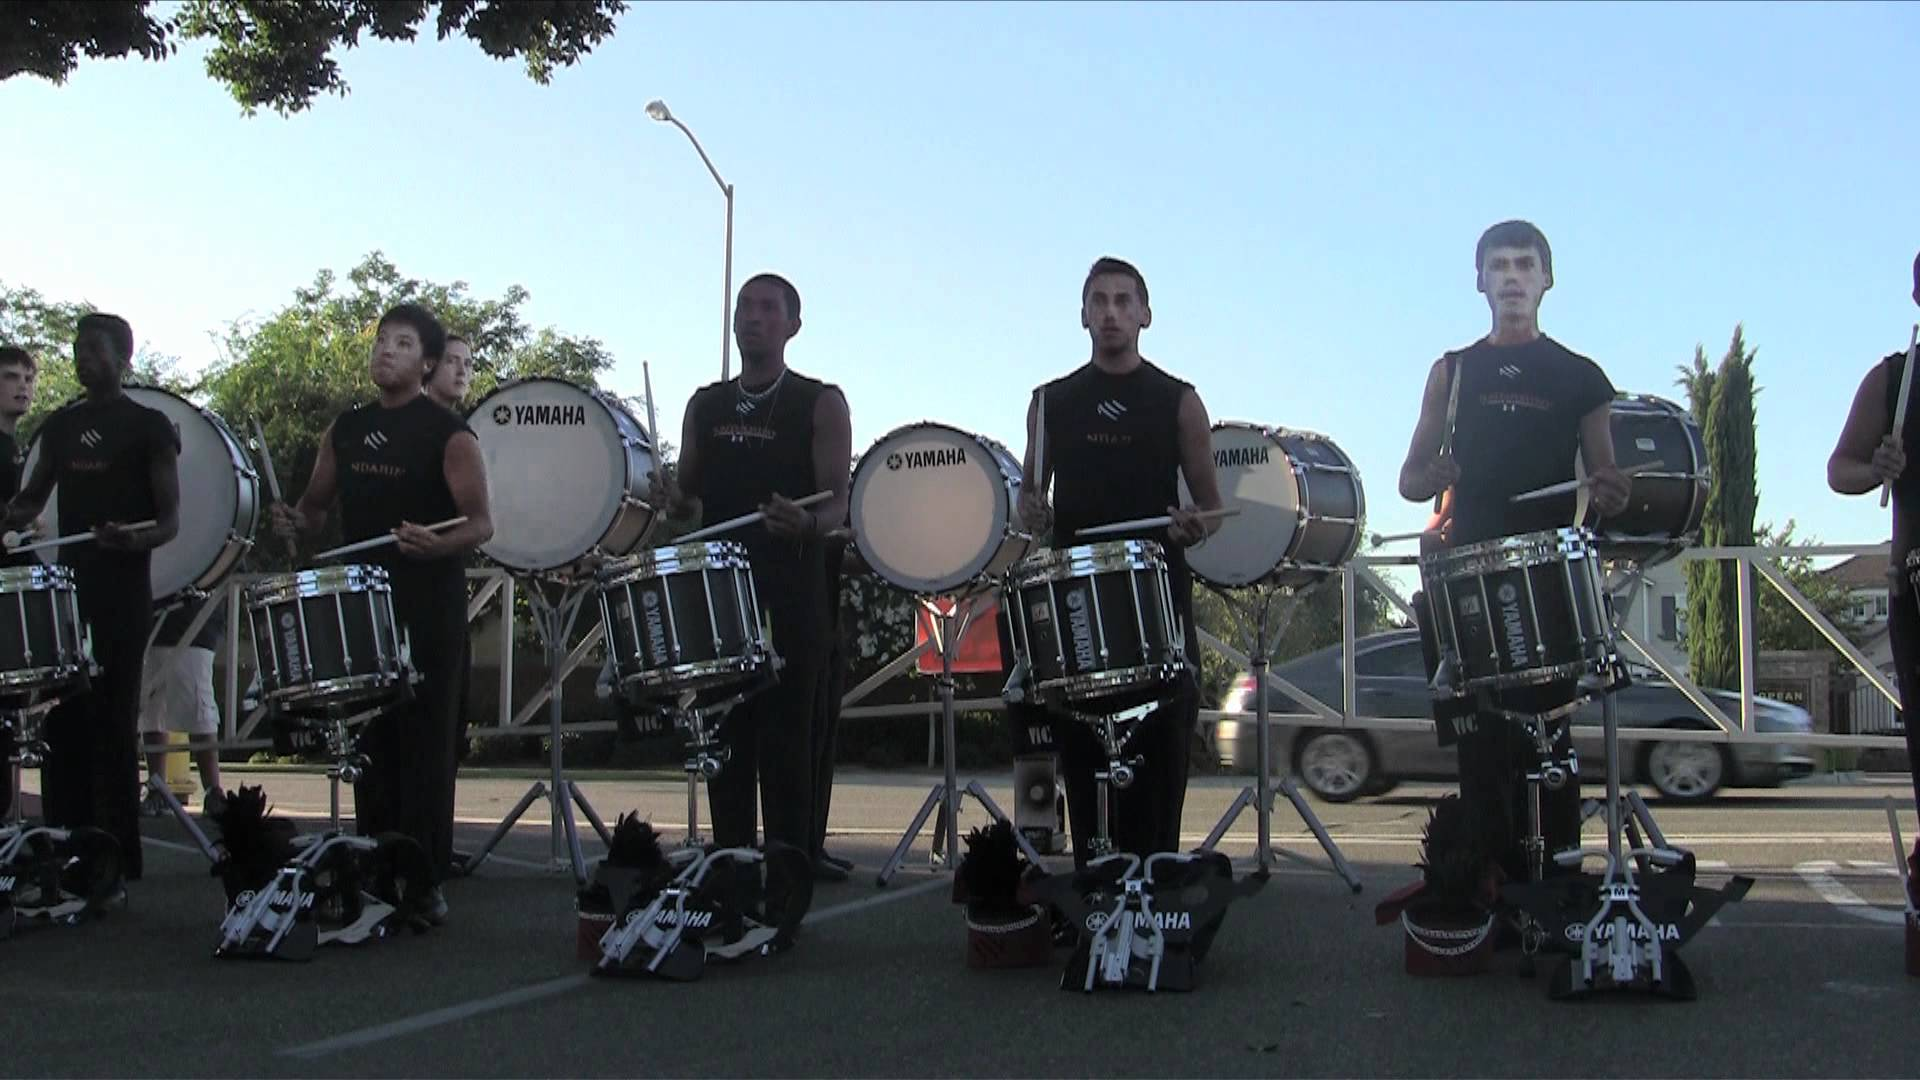 Mandarins Drumline 2012 – Warmup Exercises